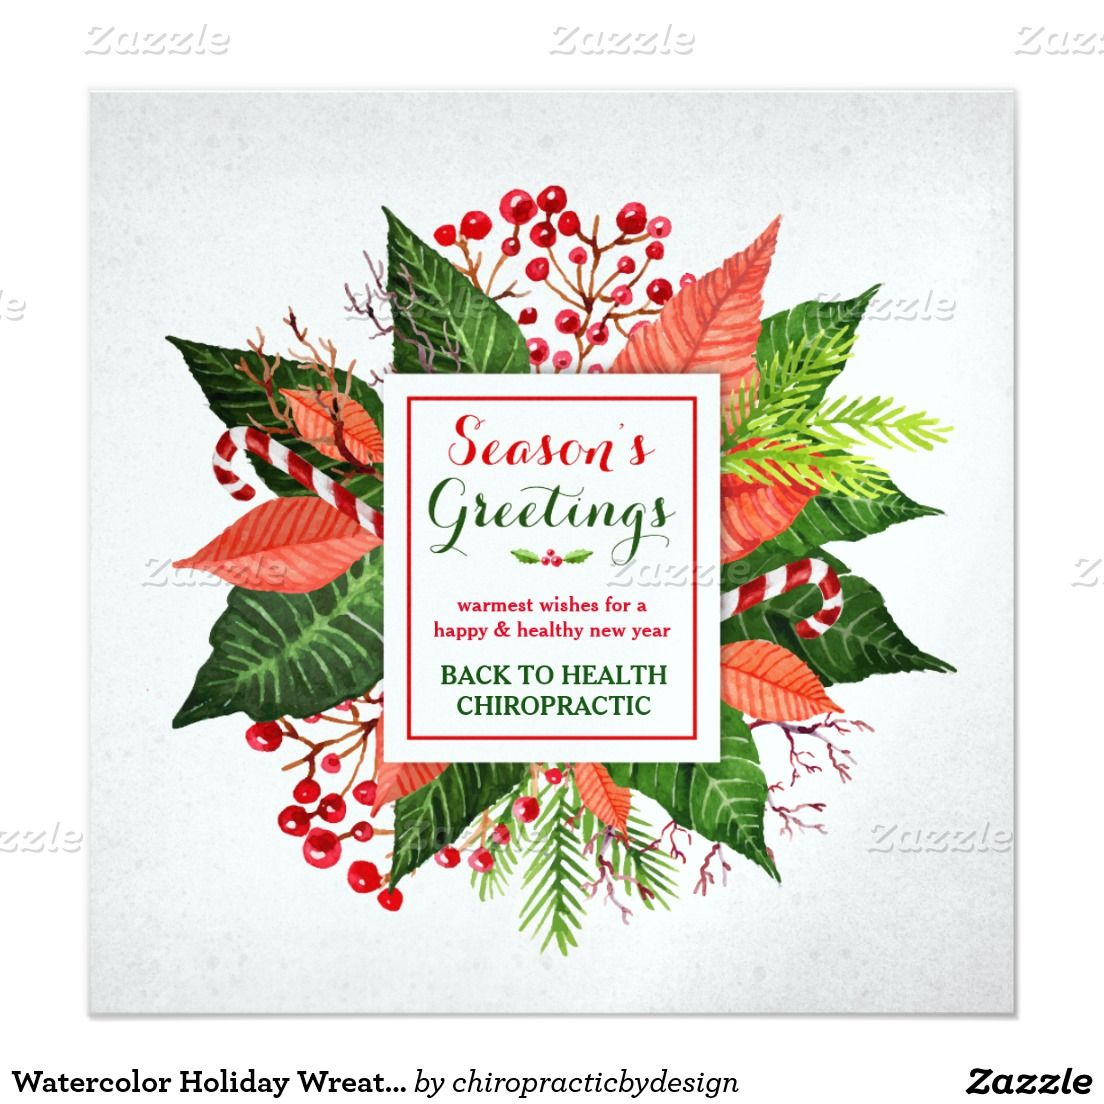 Watercolor Holiday Wreath Corporate Christmas Card Chiropractic